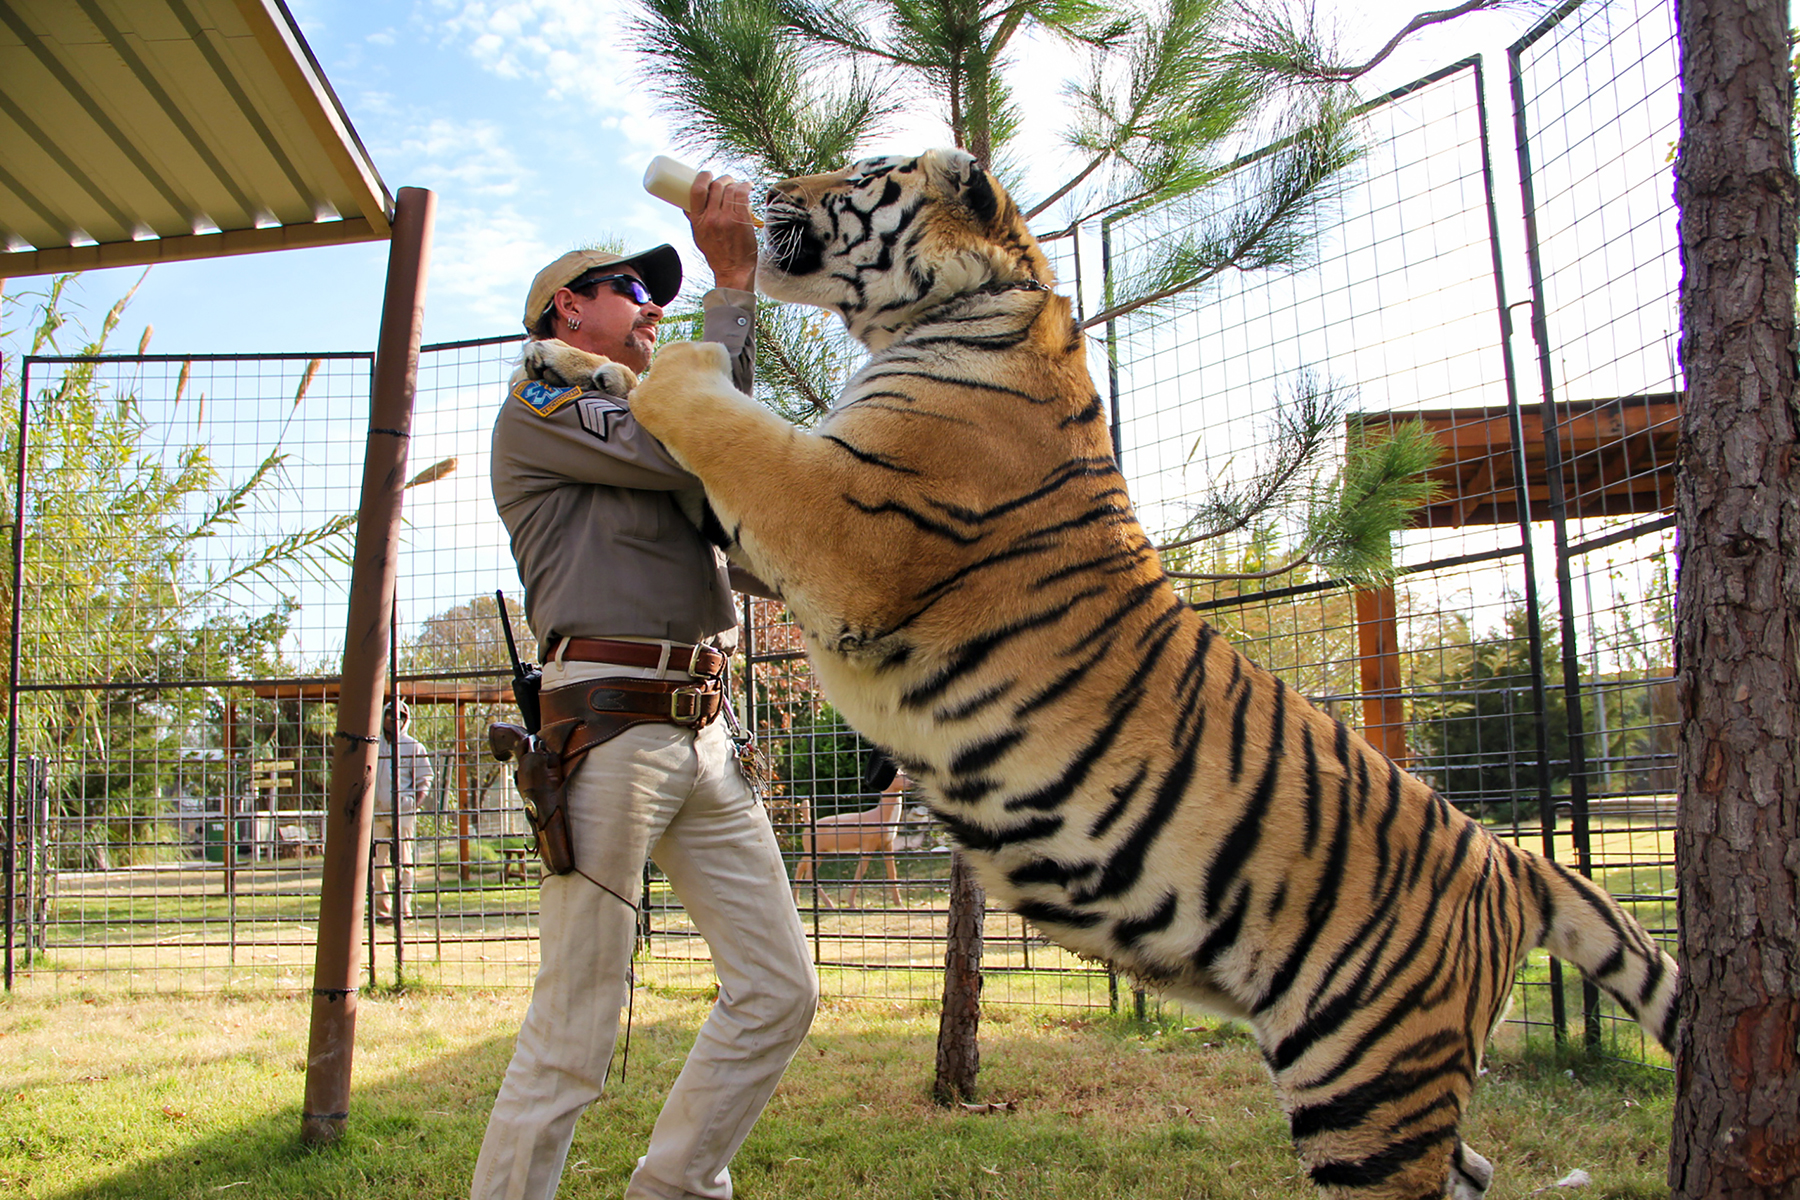 Big Cats, Cults and Murder: Inside the Making of Netflix's 'Tiger King'